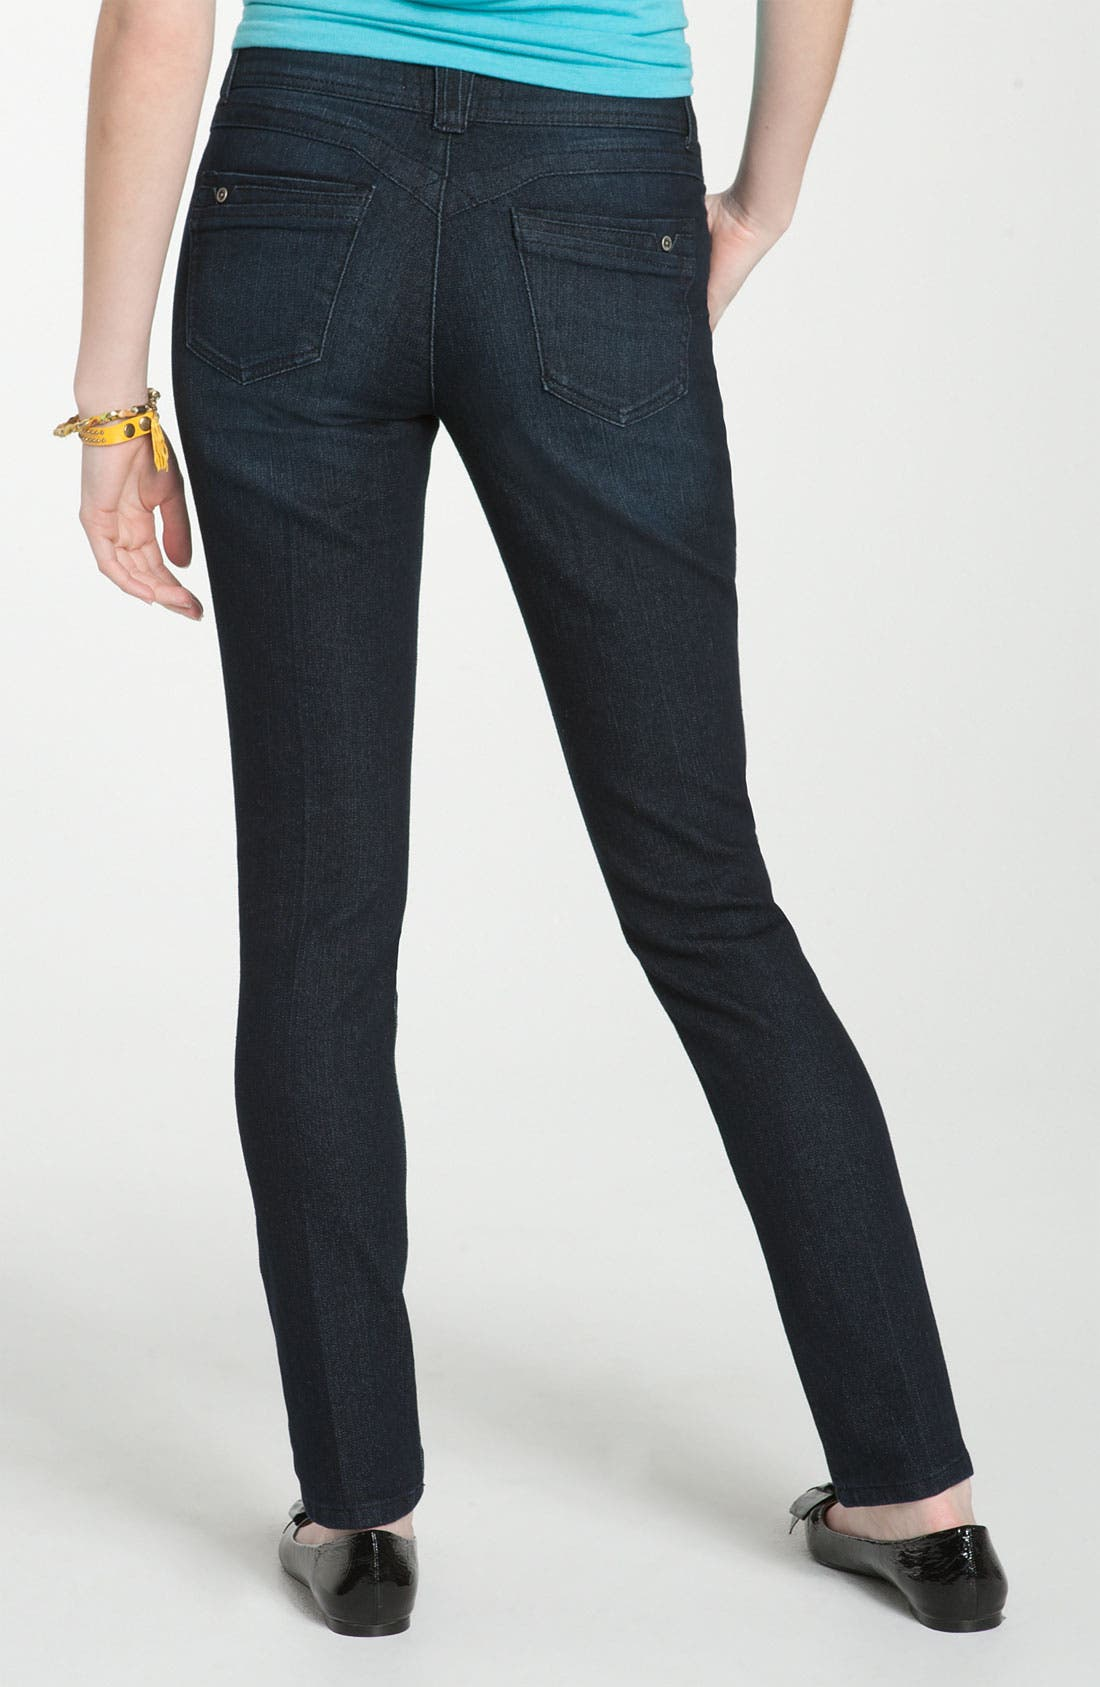 Main Image - Jolt 'Pick Me Up' Skinny Jeans (Juniors)